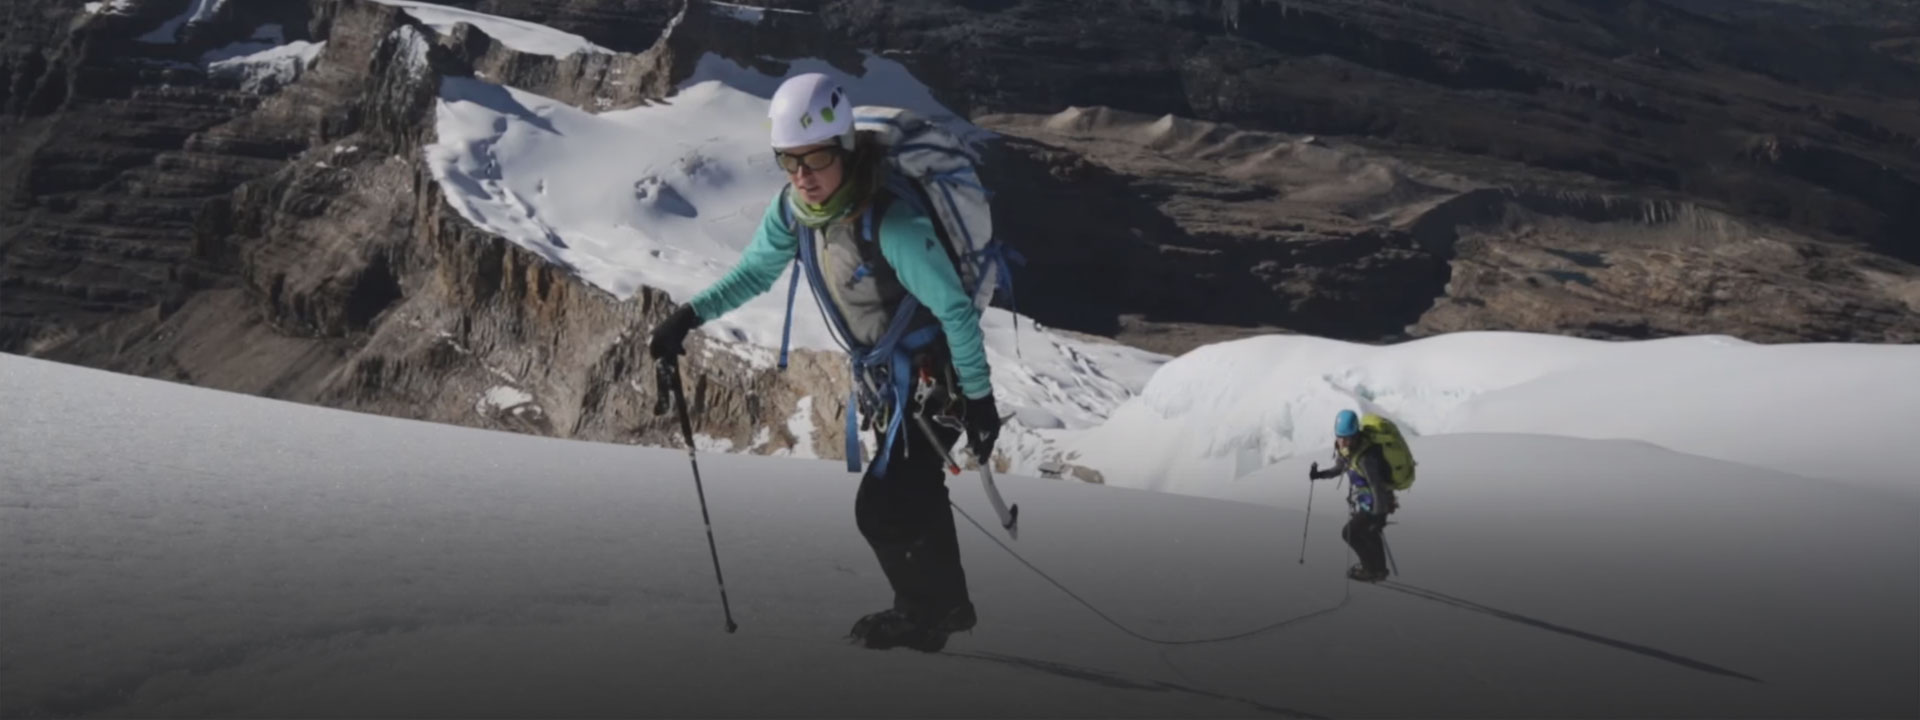 Woman climbing snowy mountain, learn about 50 Peak Challenge